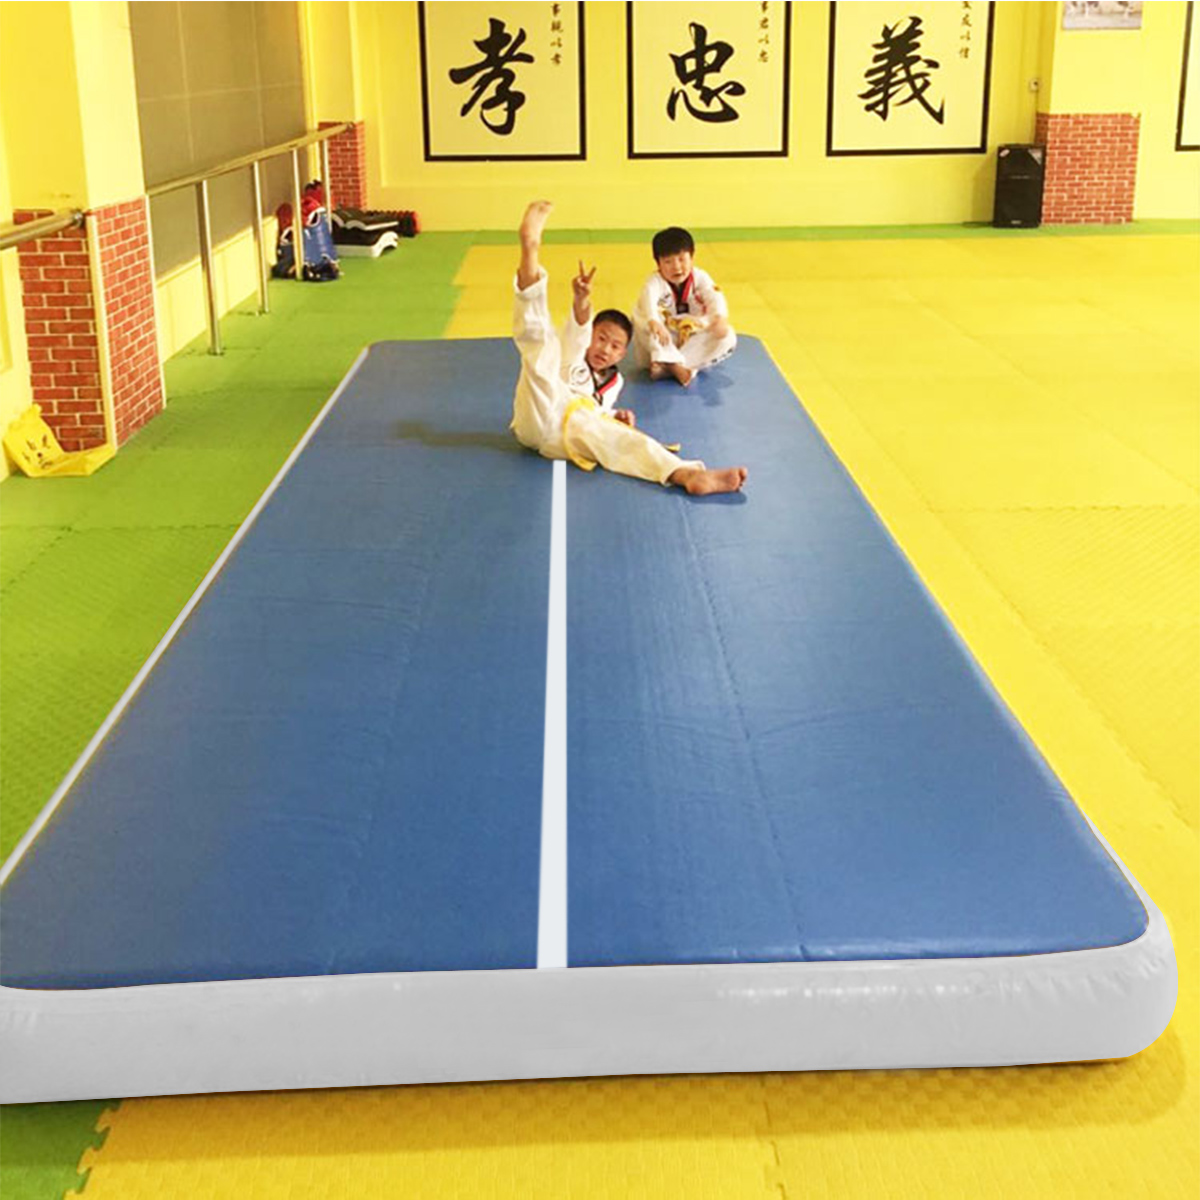 196.8x39.3x7.8 inch Inflatable GYM Air Track Mat Home Airtrack Gymnastics Mat Floor Tumbling Rolling Pad